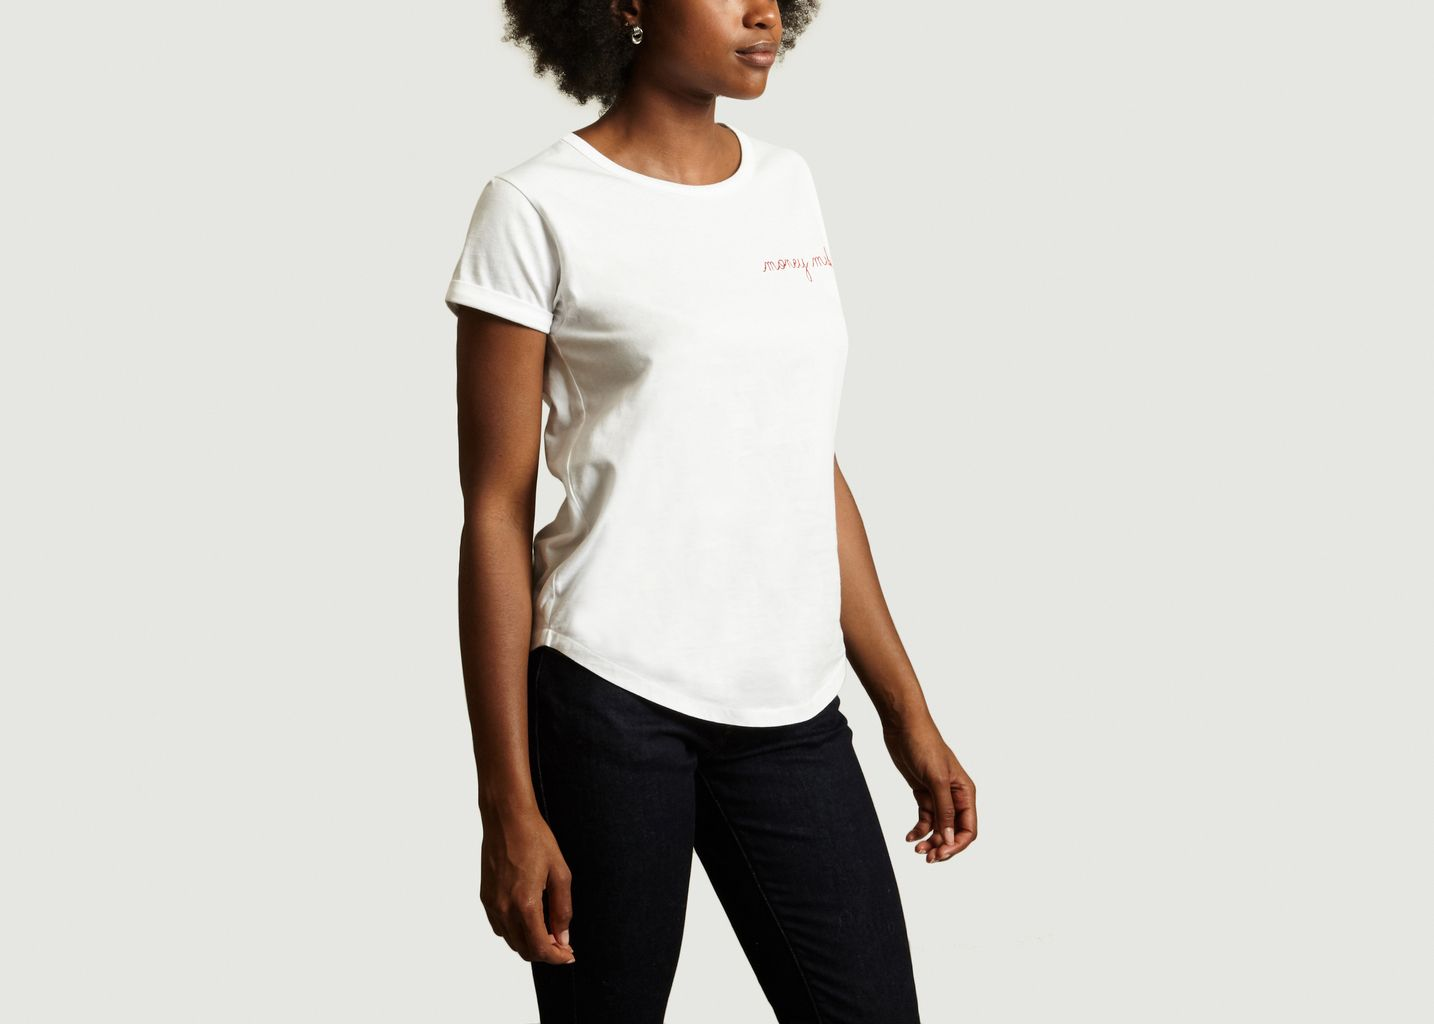 T-shirt Money Maker - Maison Labiche